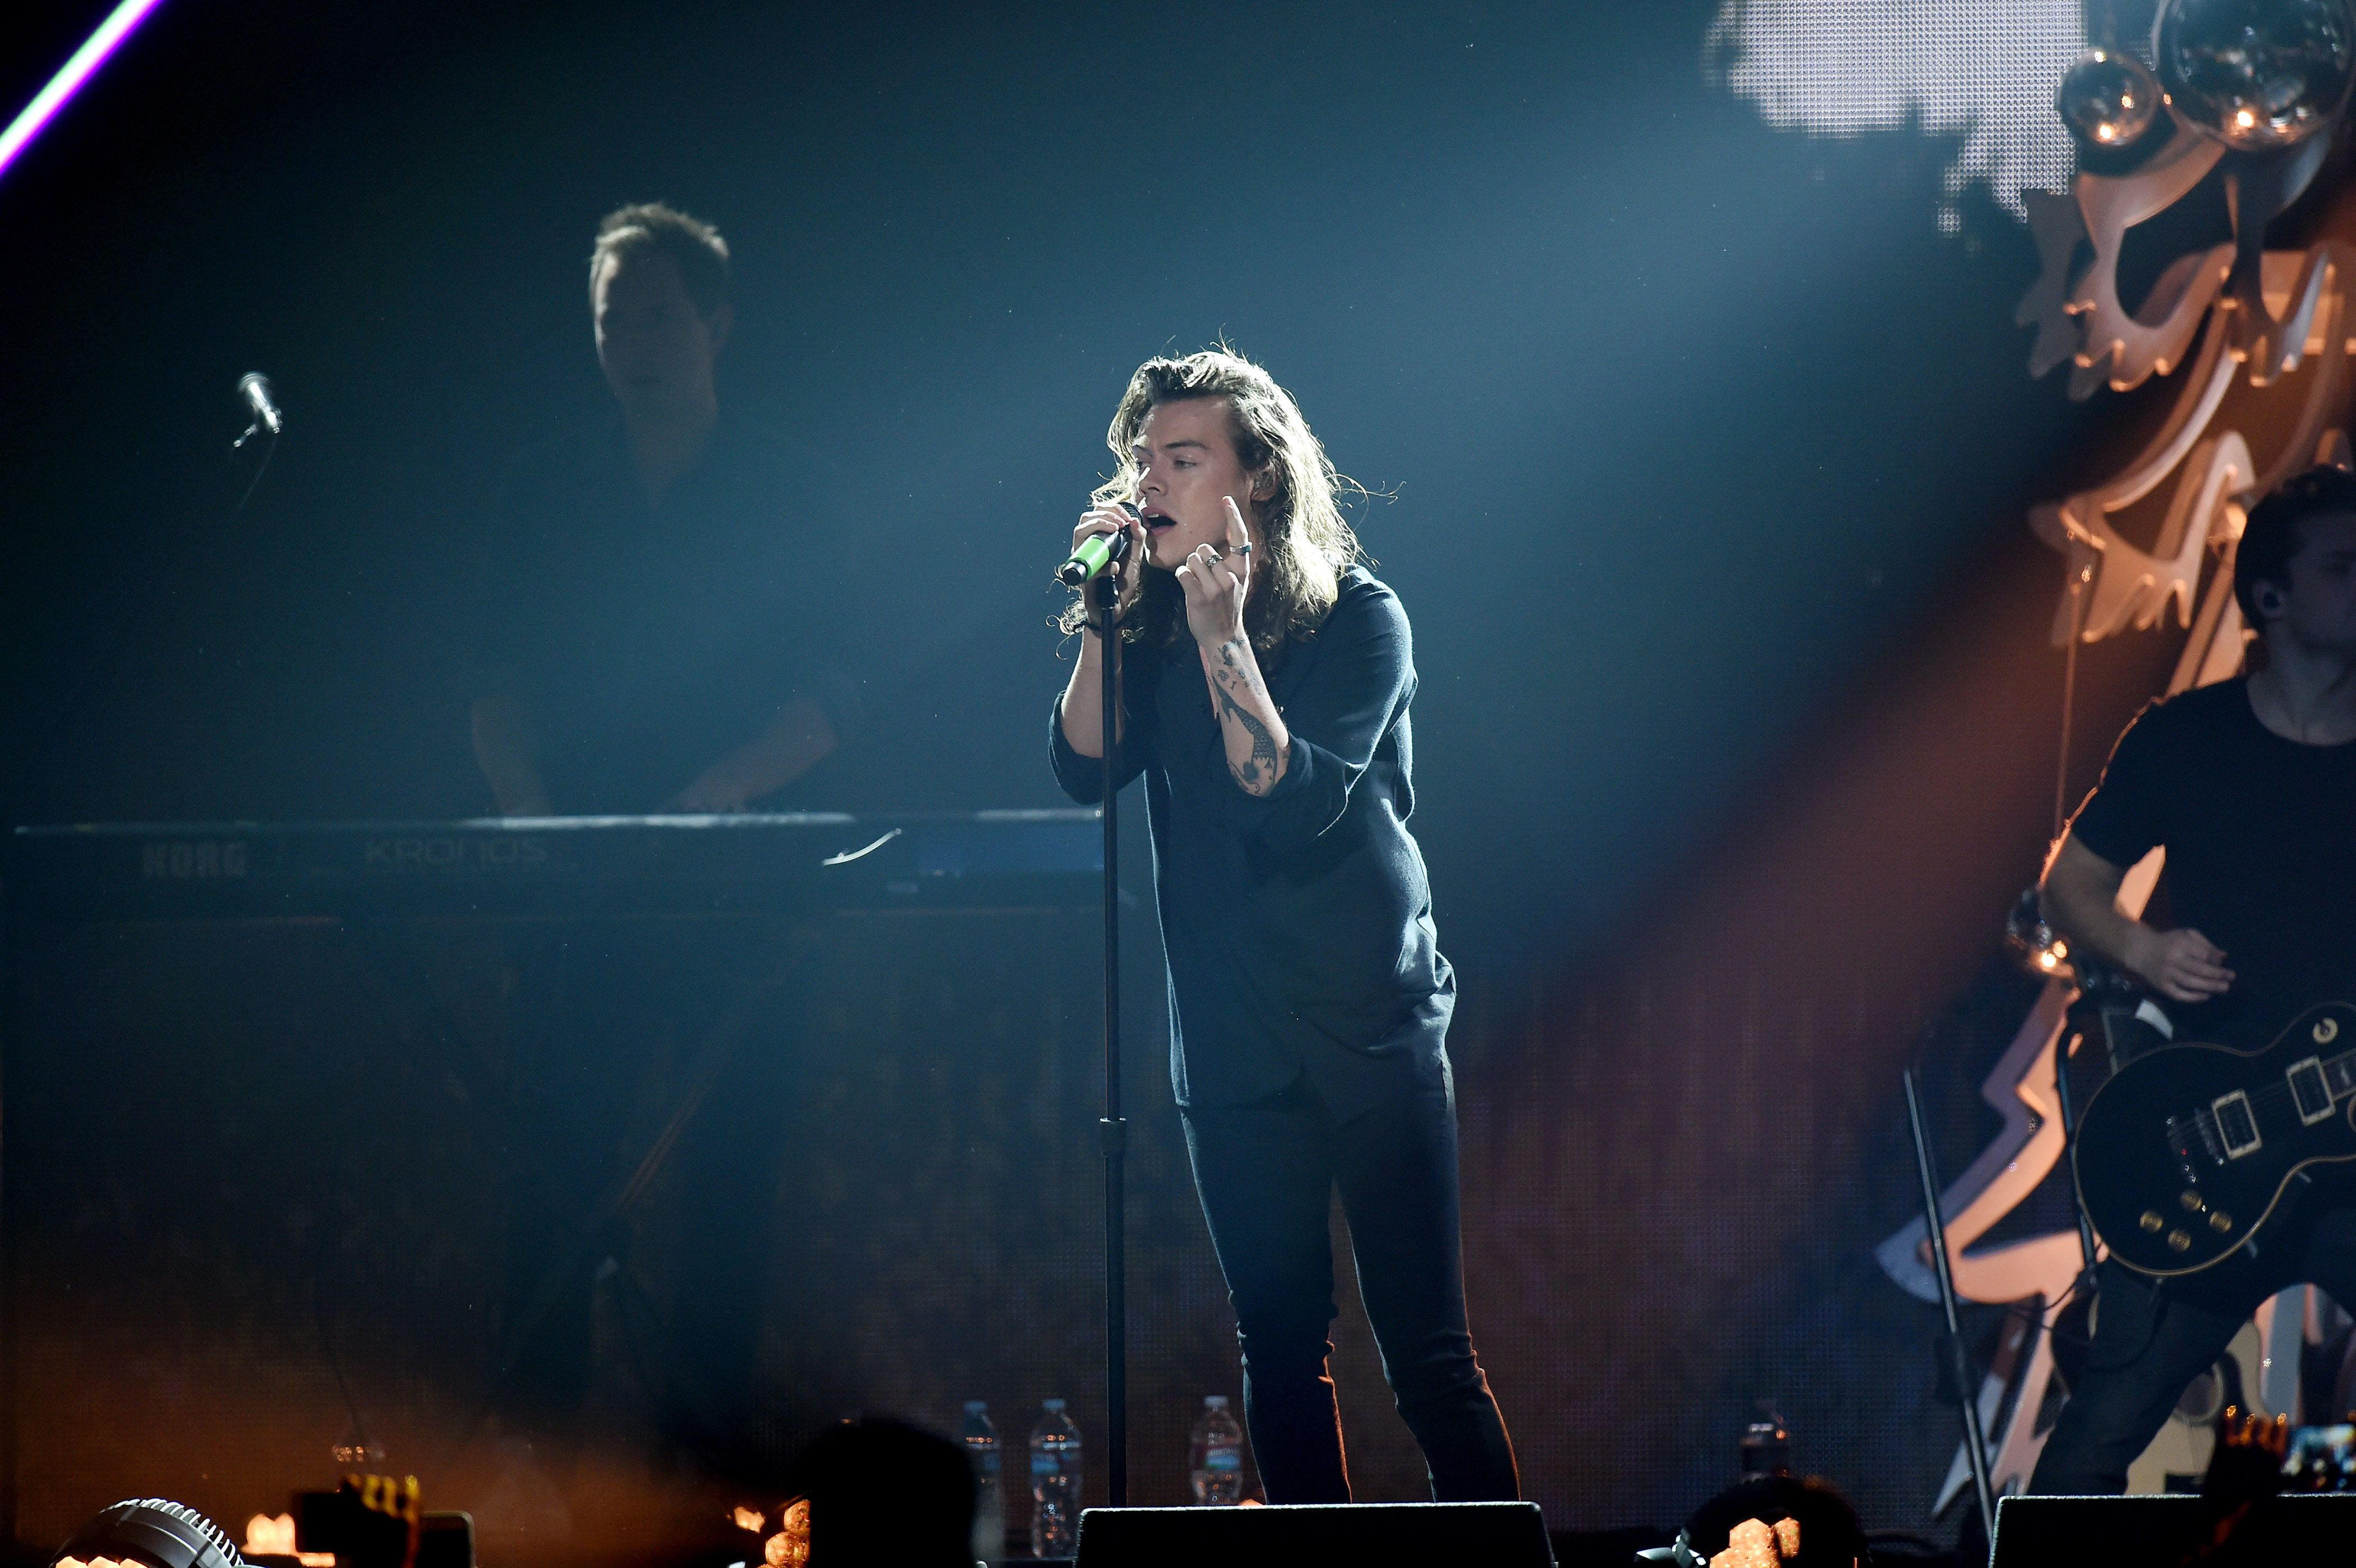 LOS ANGELES, CA - DECEMBER 04:  Recording artist Harry Styles of One Direction performs at 102.7 KIIS FM's Jingle Ball 2015 presented by Capital One at Staples Center on December 4, 2015 in Los Angeles, California.  (Photo by Axelle/Bauer-Griffin/FilmMagic)